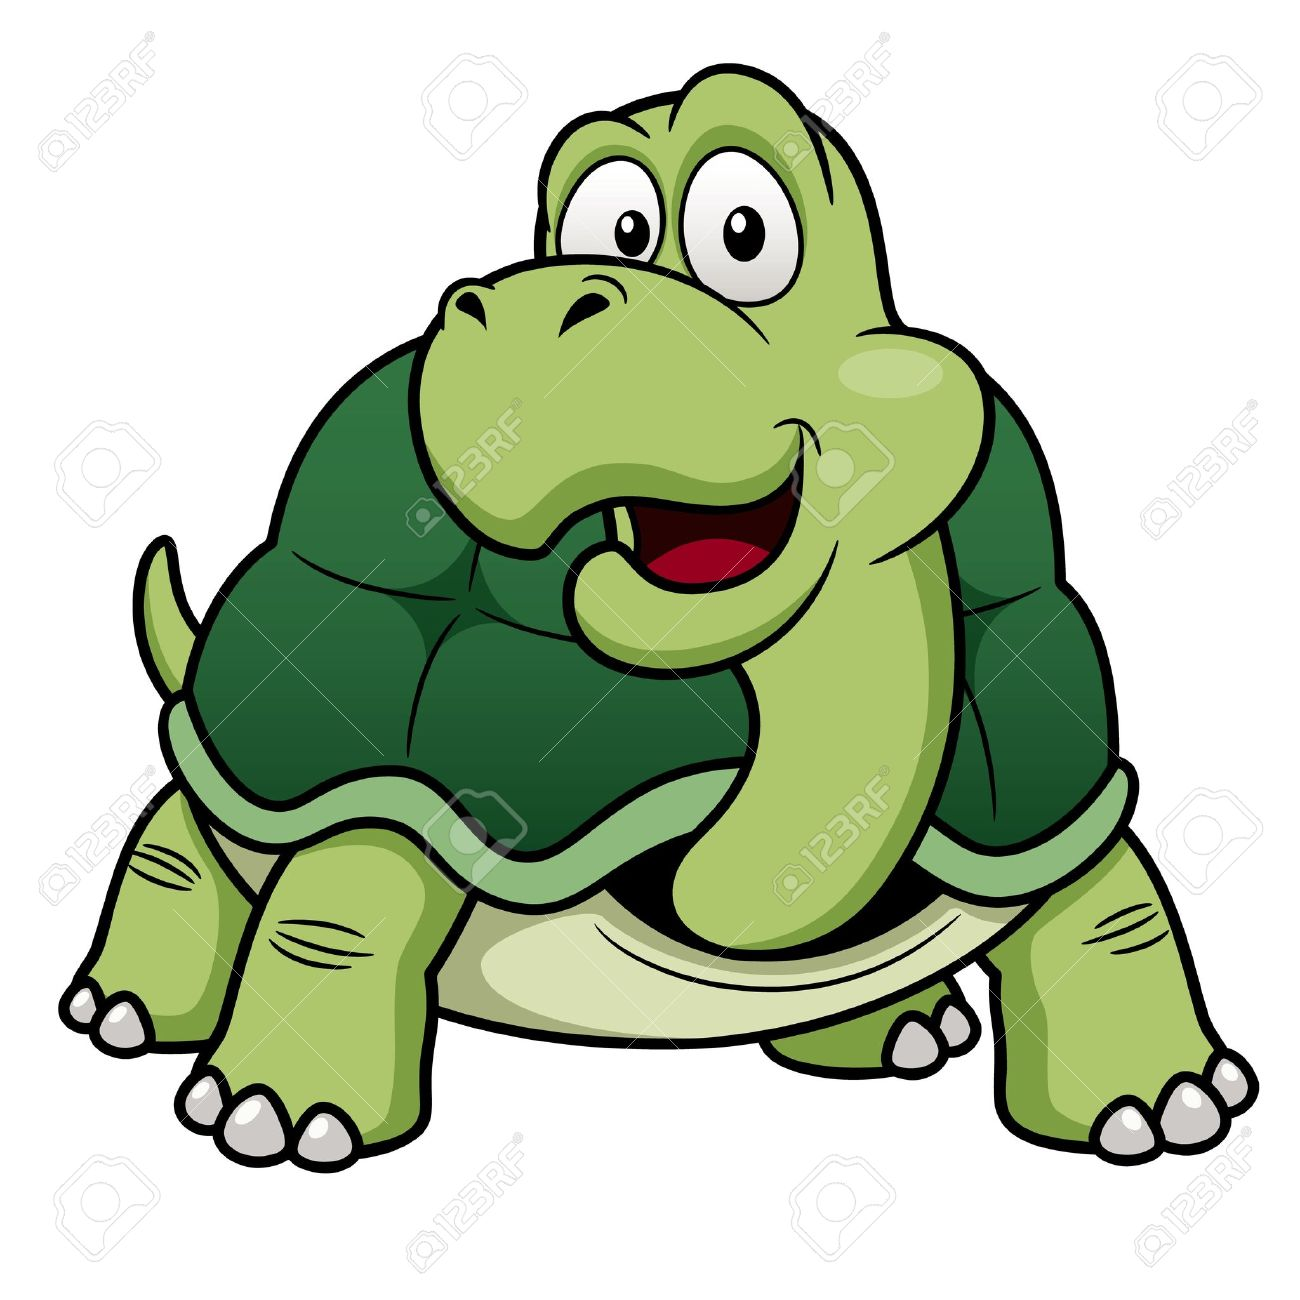 13,152 Turtle Stock Vector Illustration And Royalty Free Turtle ...